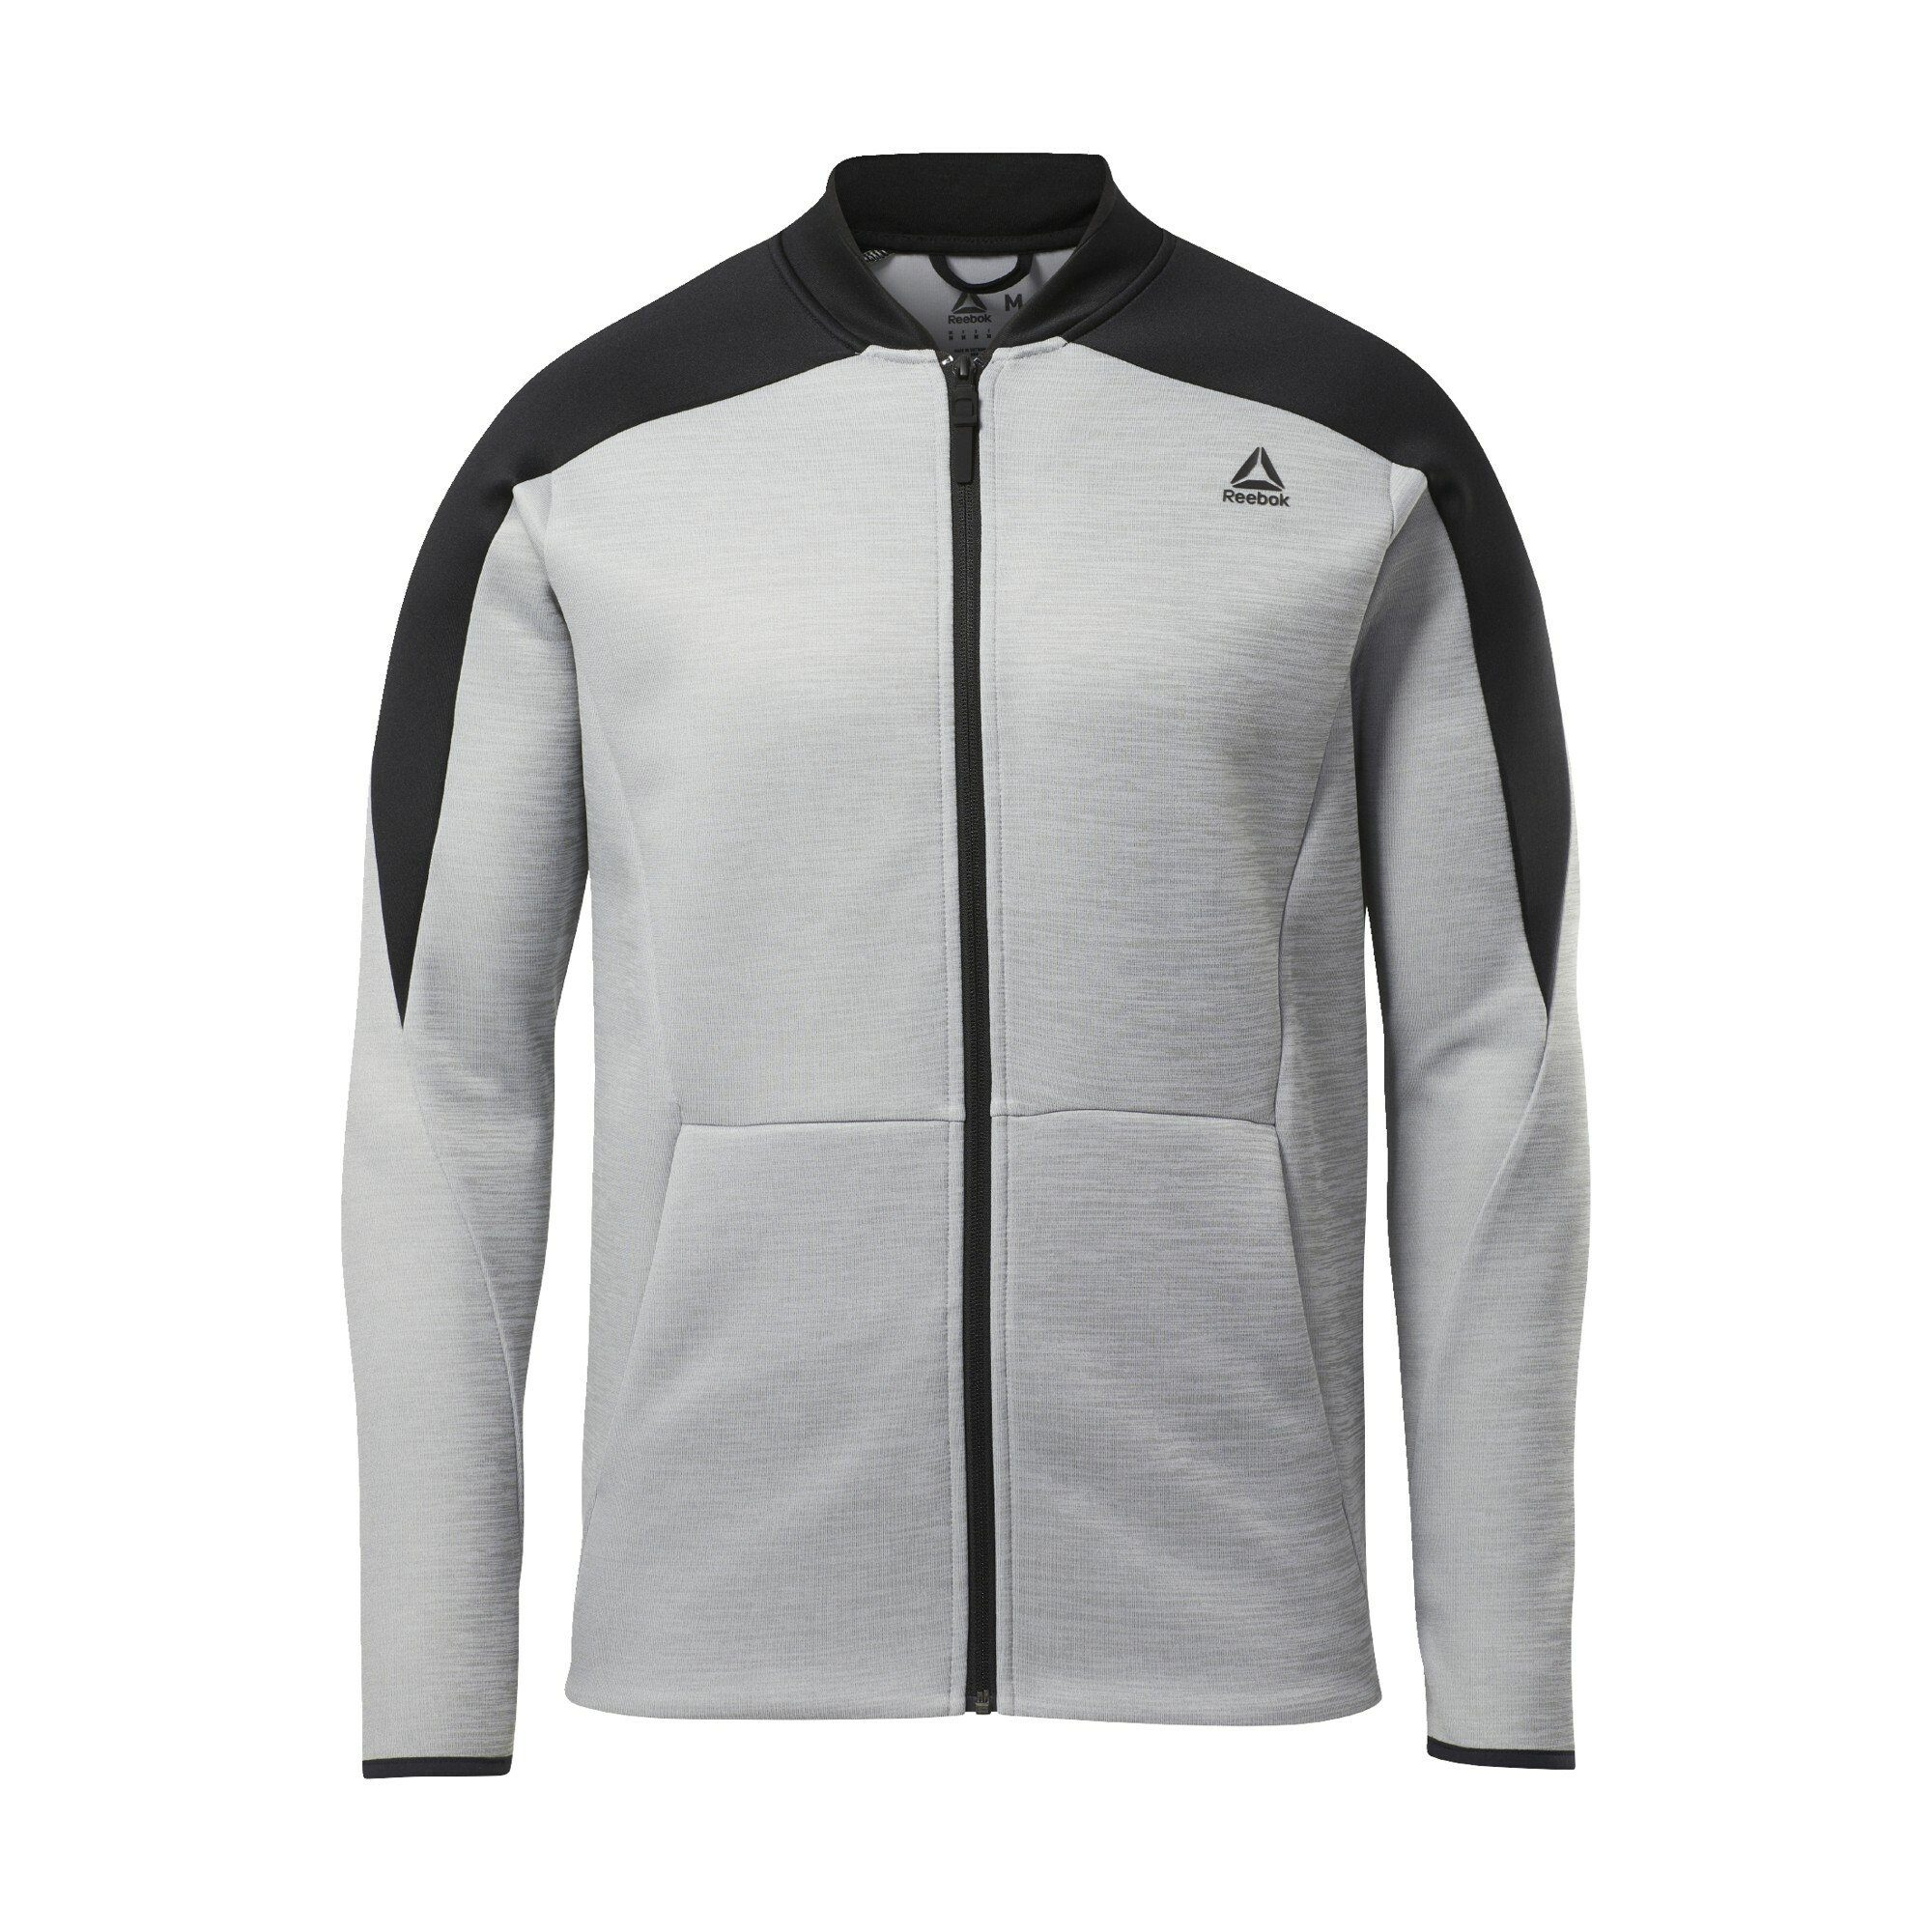 Reebok Trainingsjacke »One Series Training Spacer Track Jacket«, Spacer Material aus 100 % Polyester online kaufen | OTTO